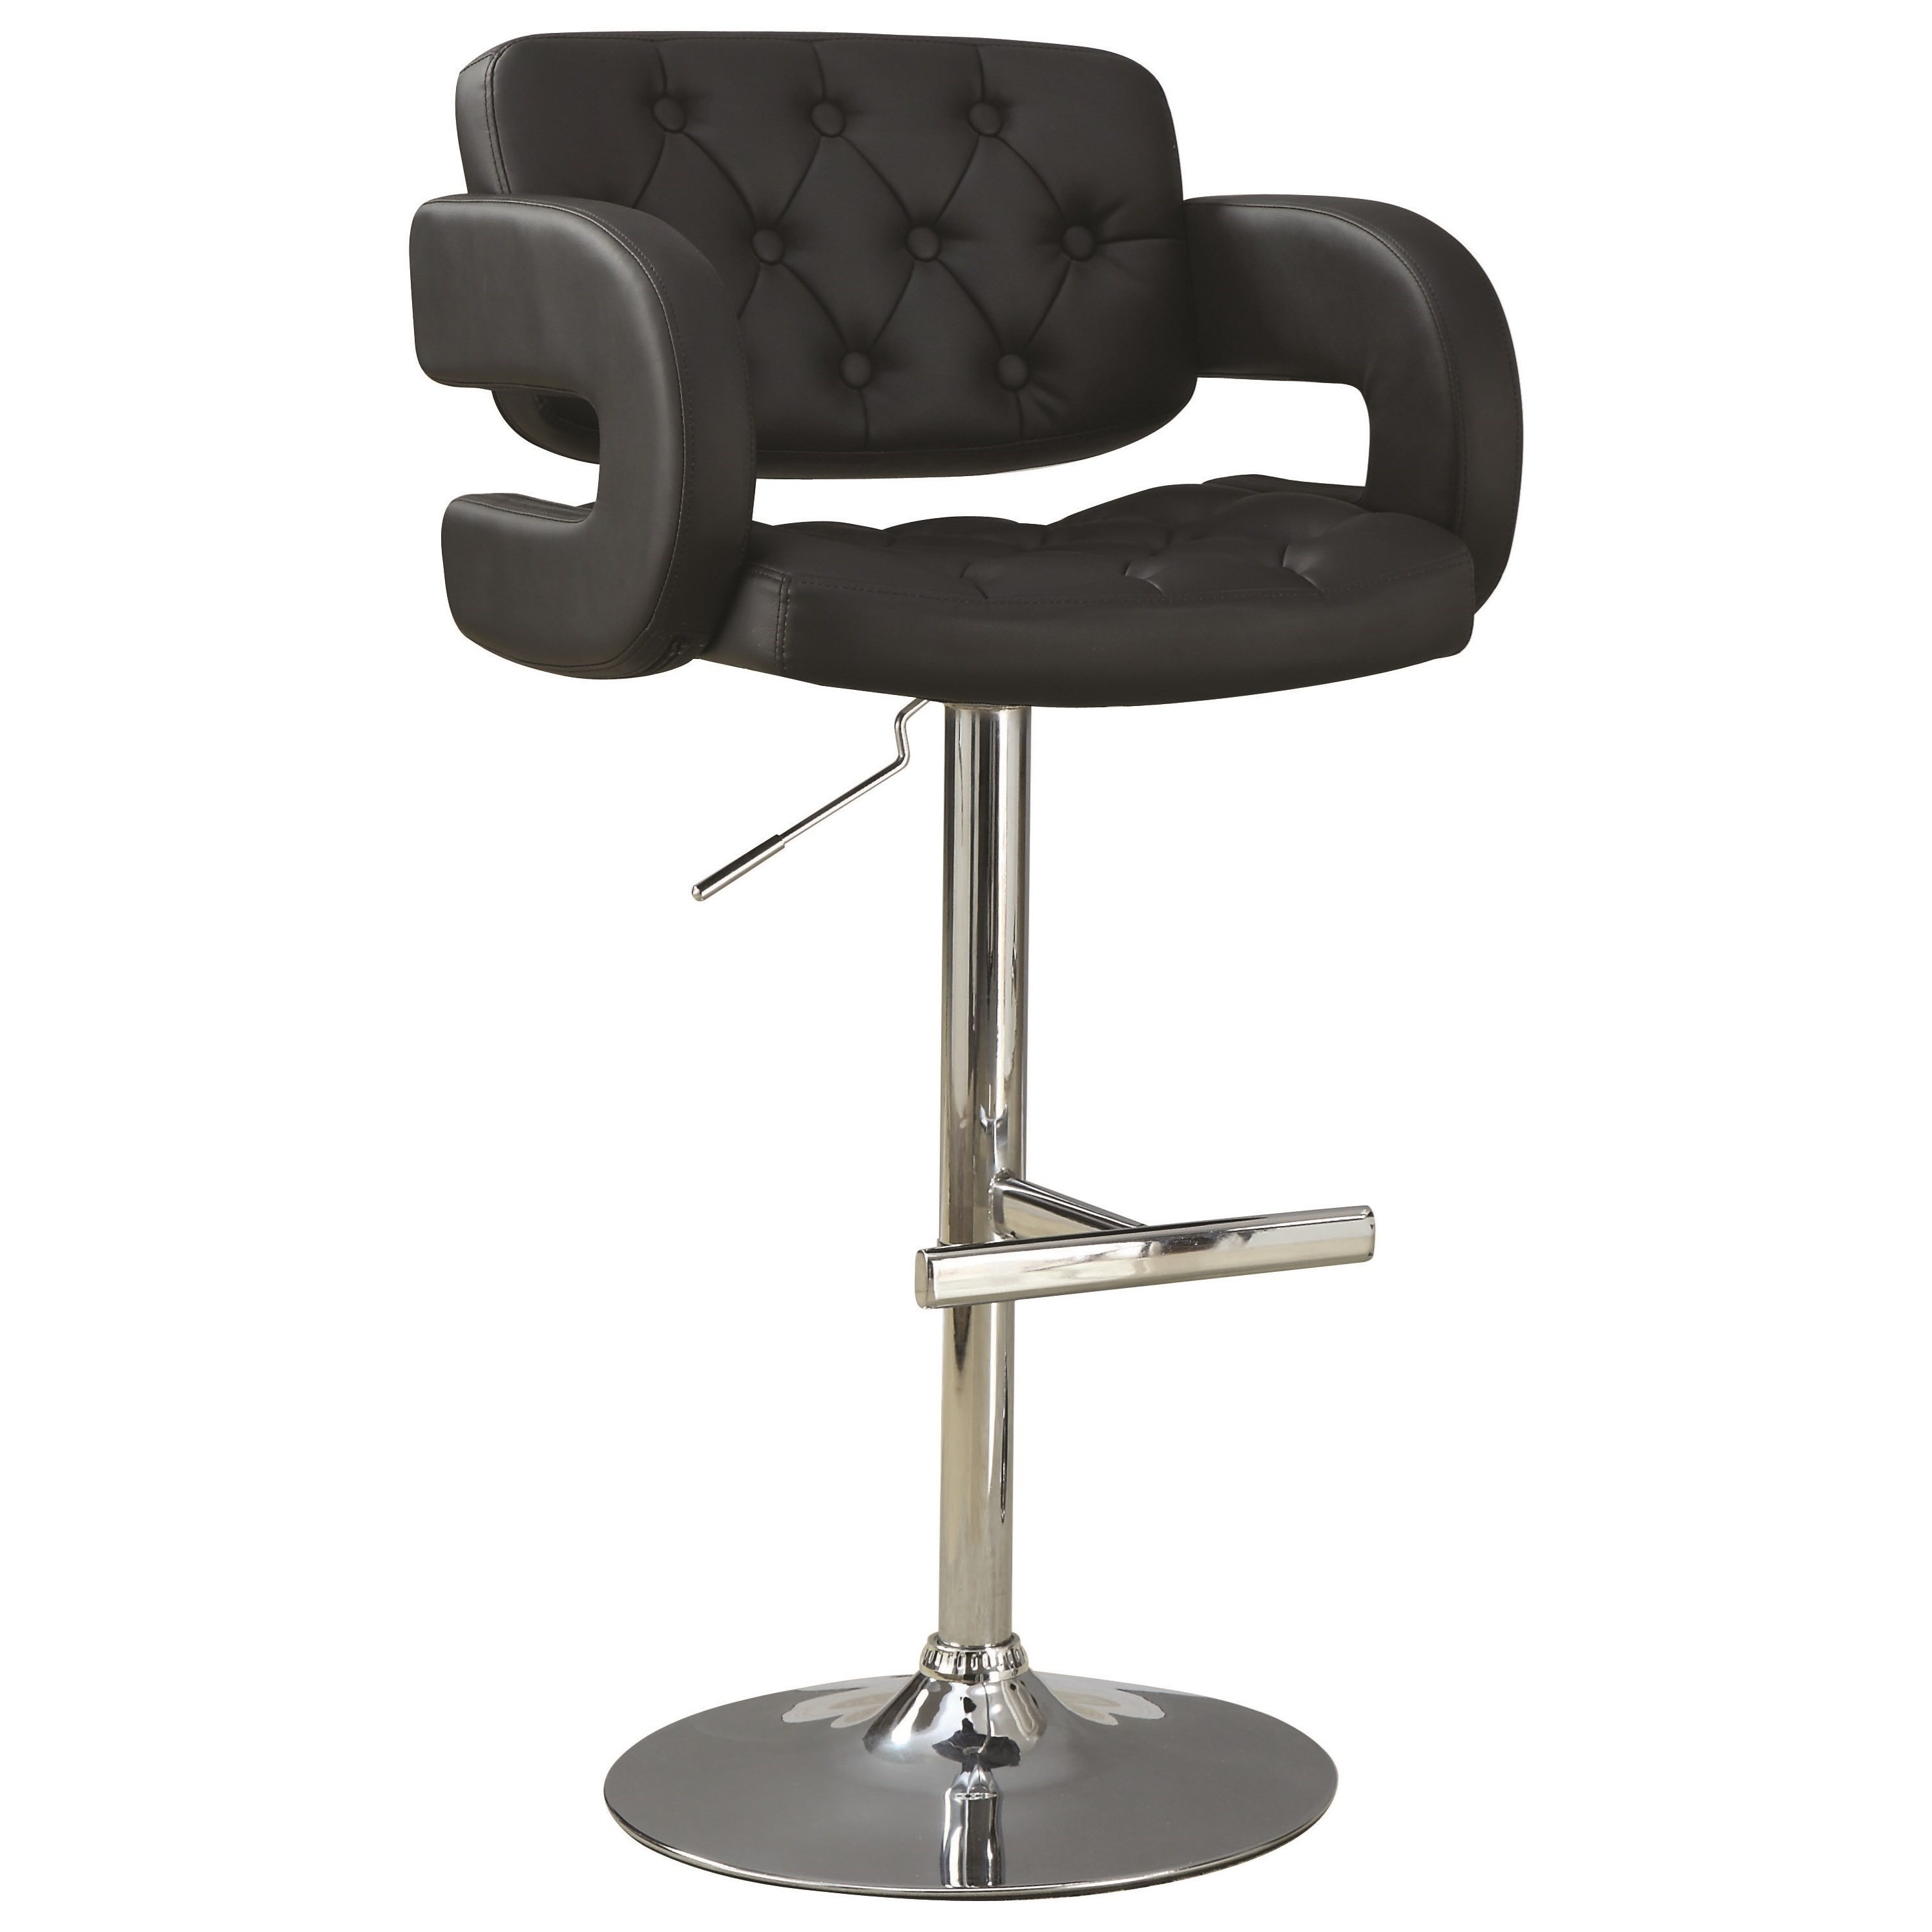 Simple Adjustable Height Barstool - products%2Fcoaster%2Fcolor%2Fdining%20chairs%20and%20bar%20stools_102555-b2  Image_71407.5